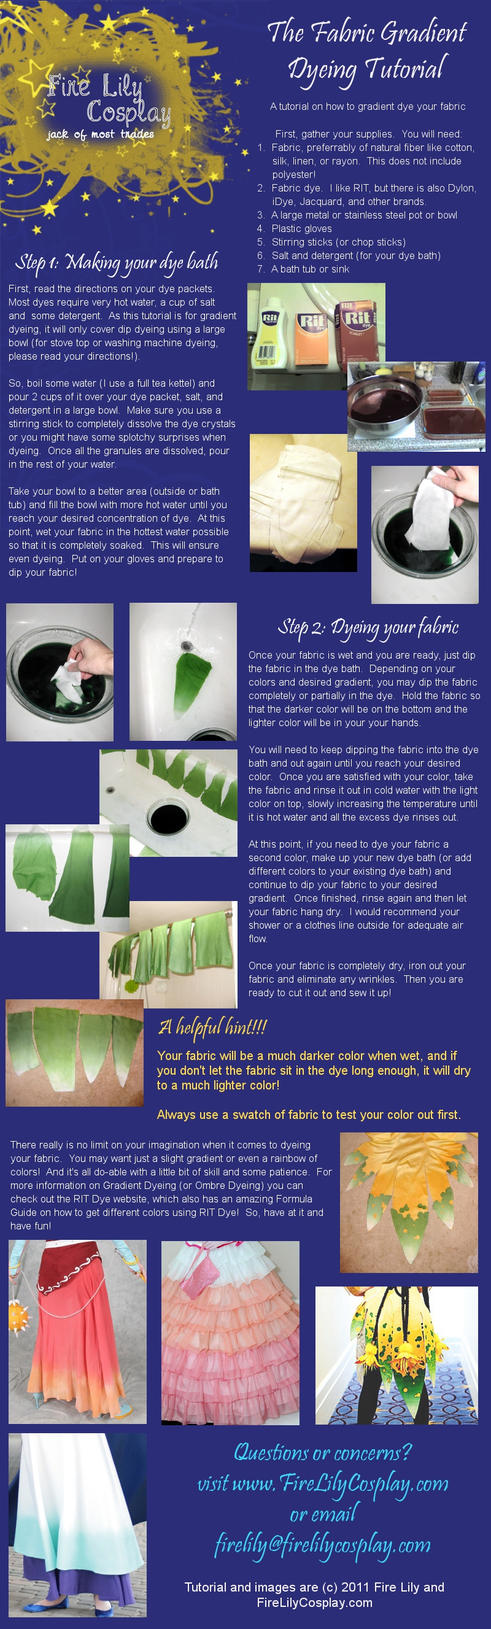 How to make fabric dye - Fabric Gradient Dye Tutorial By Firelilycosplay